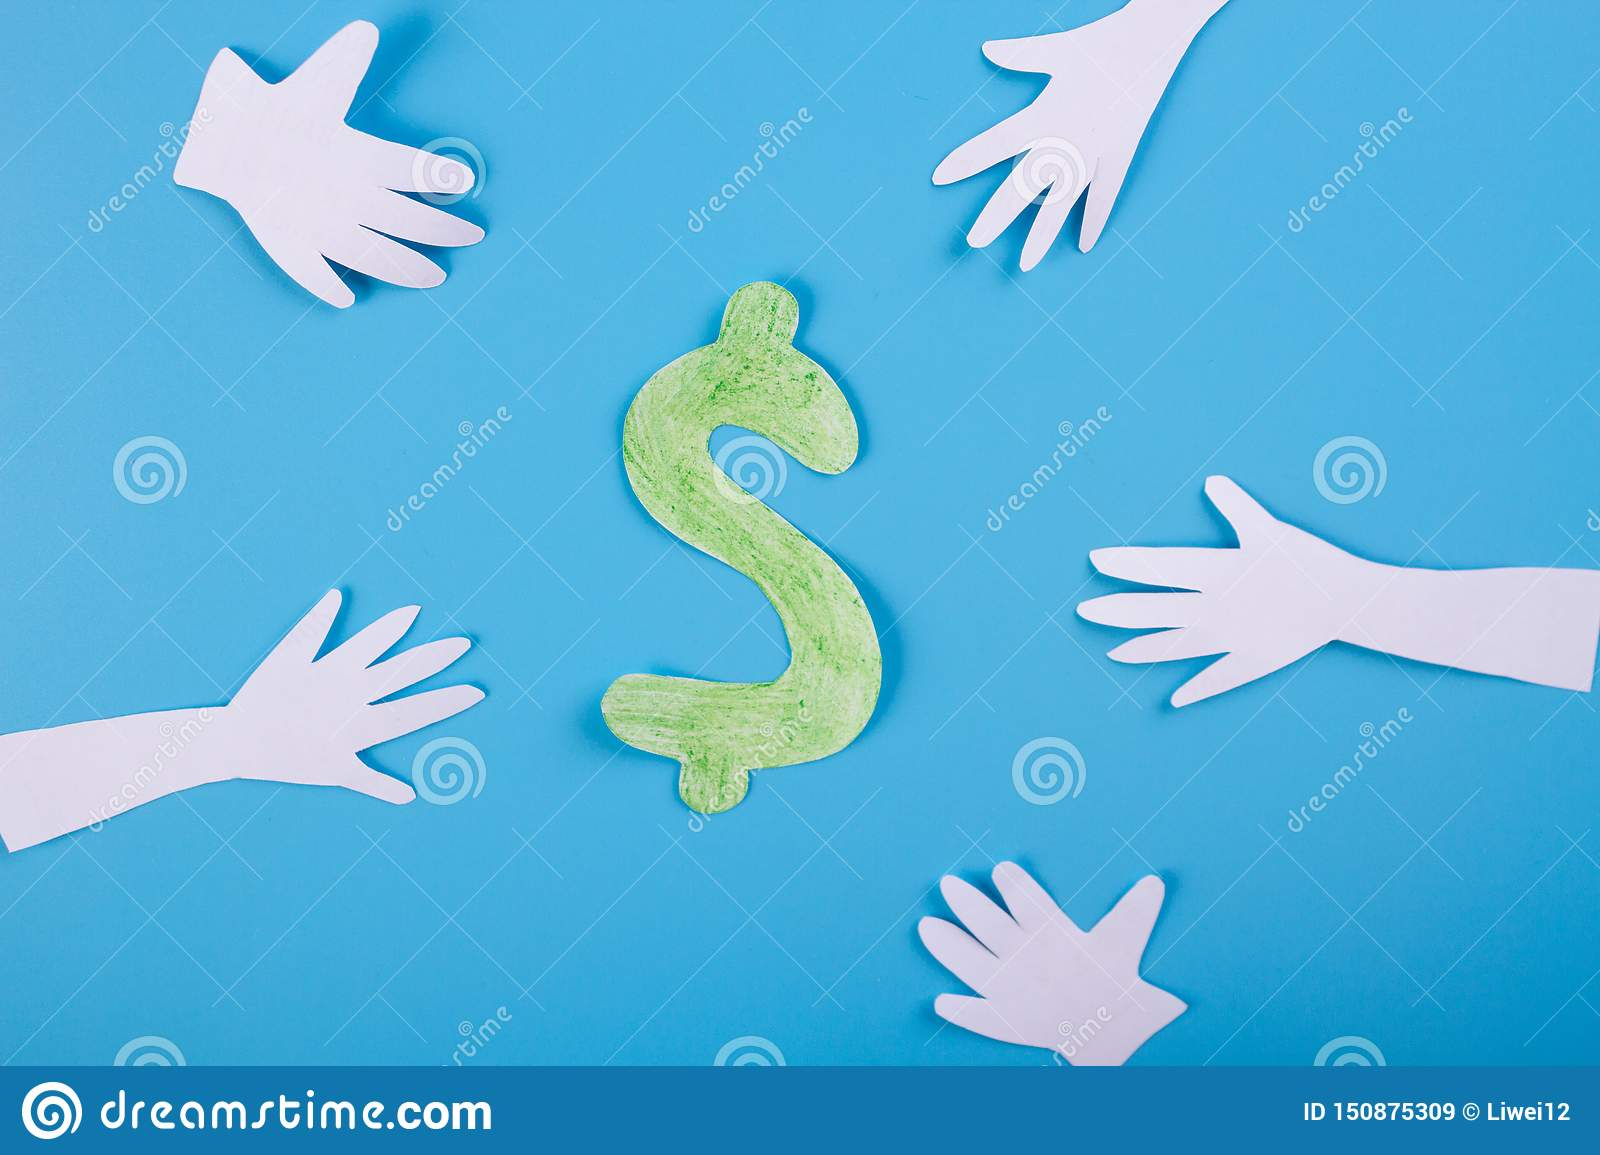 many hands extended to money